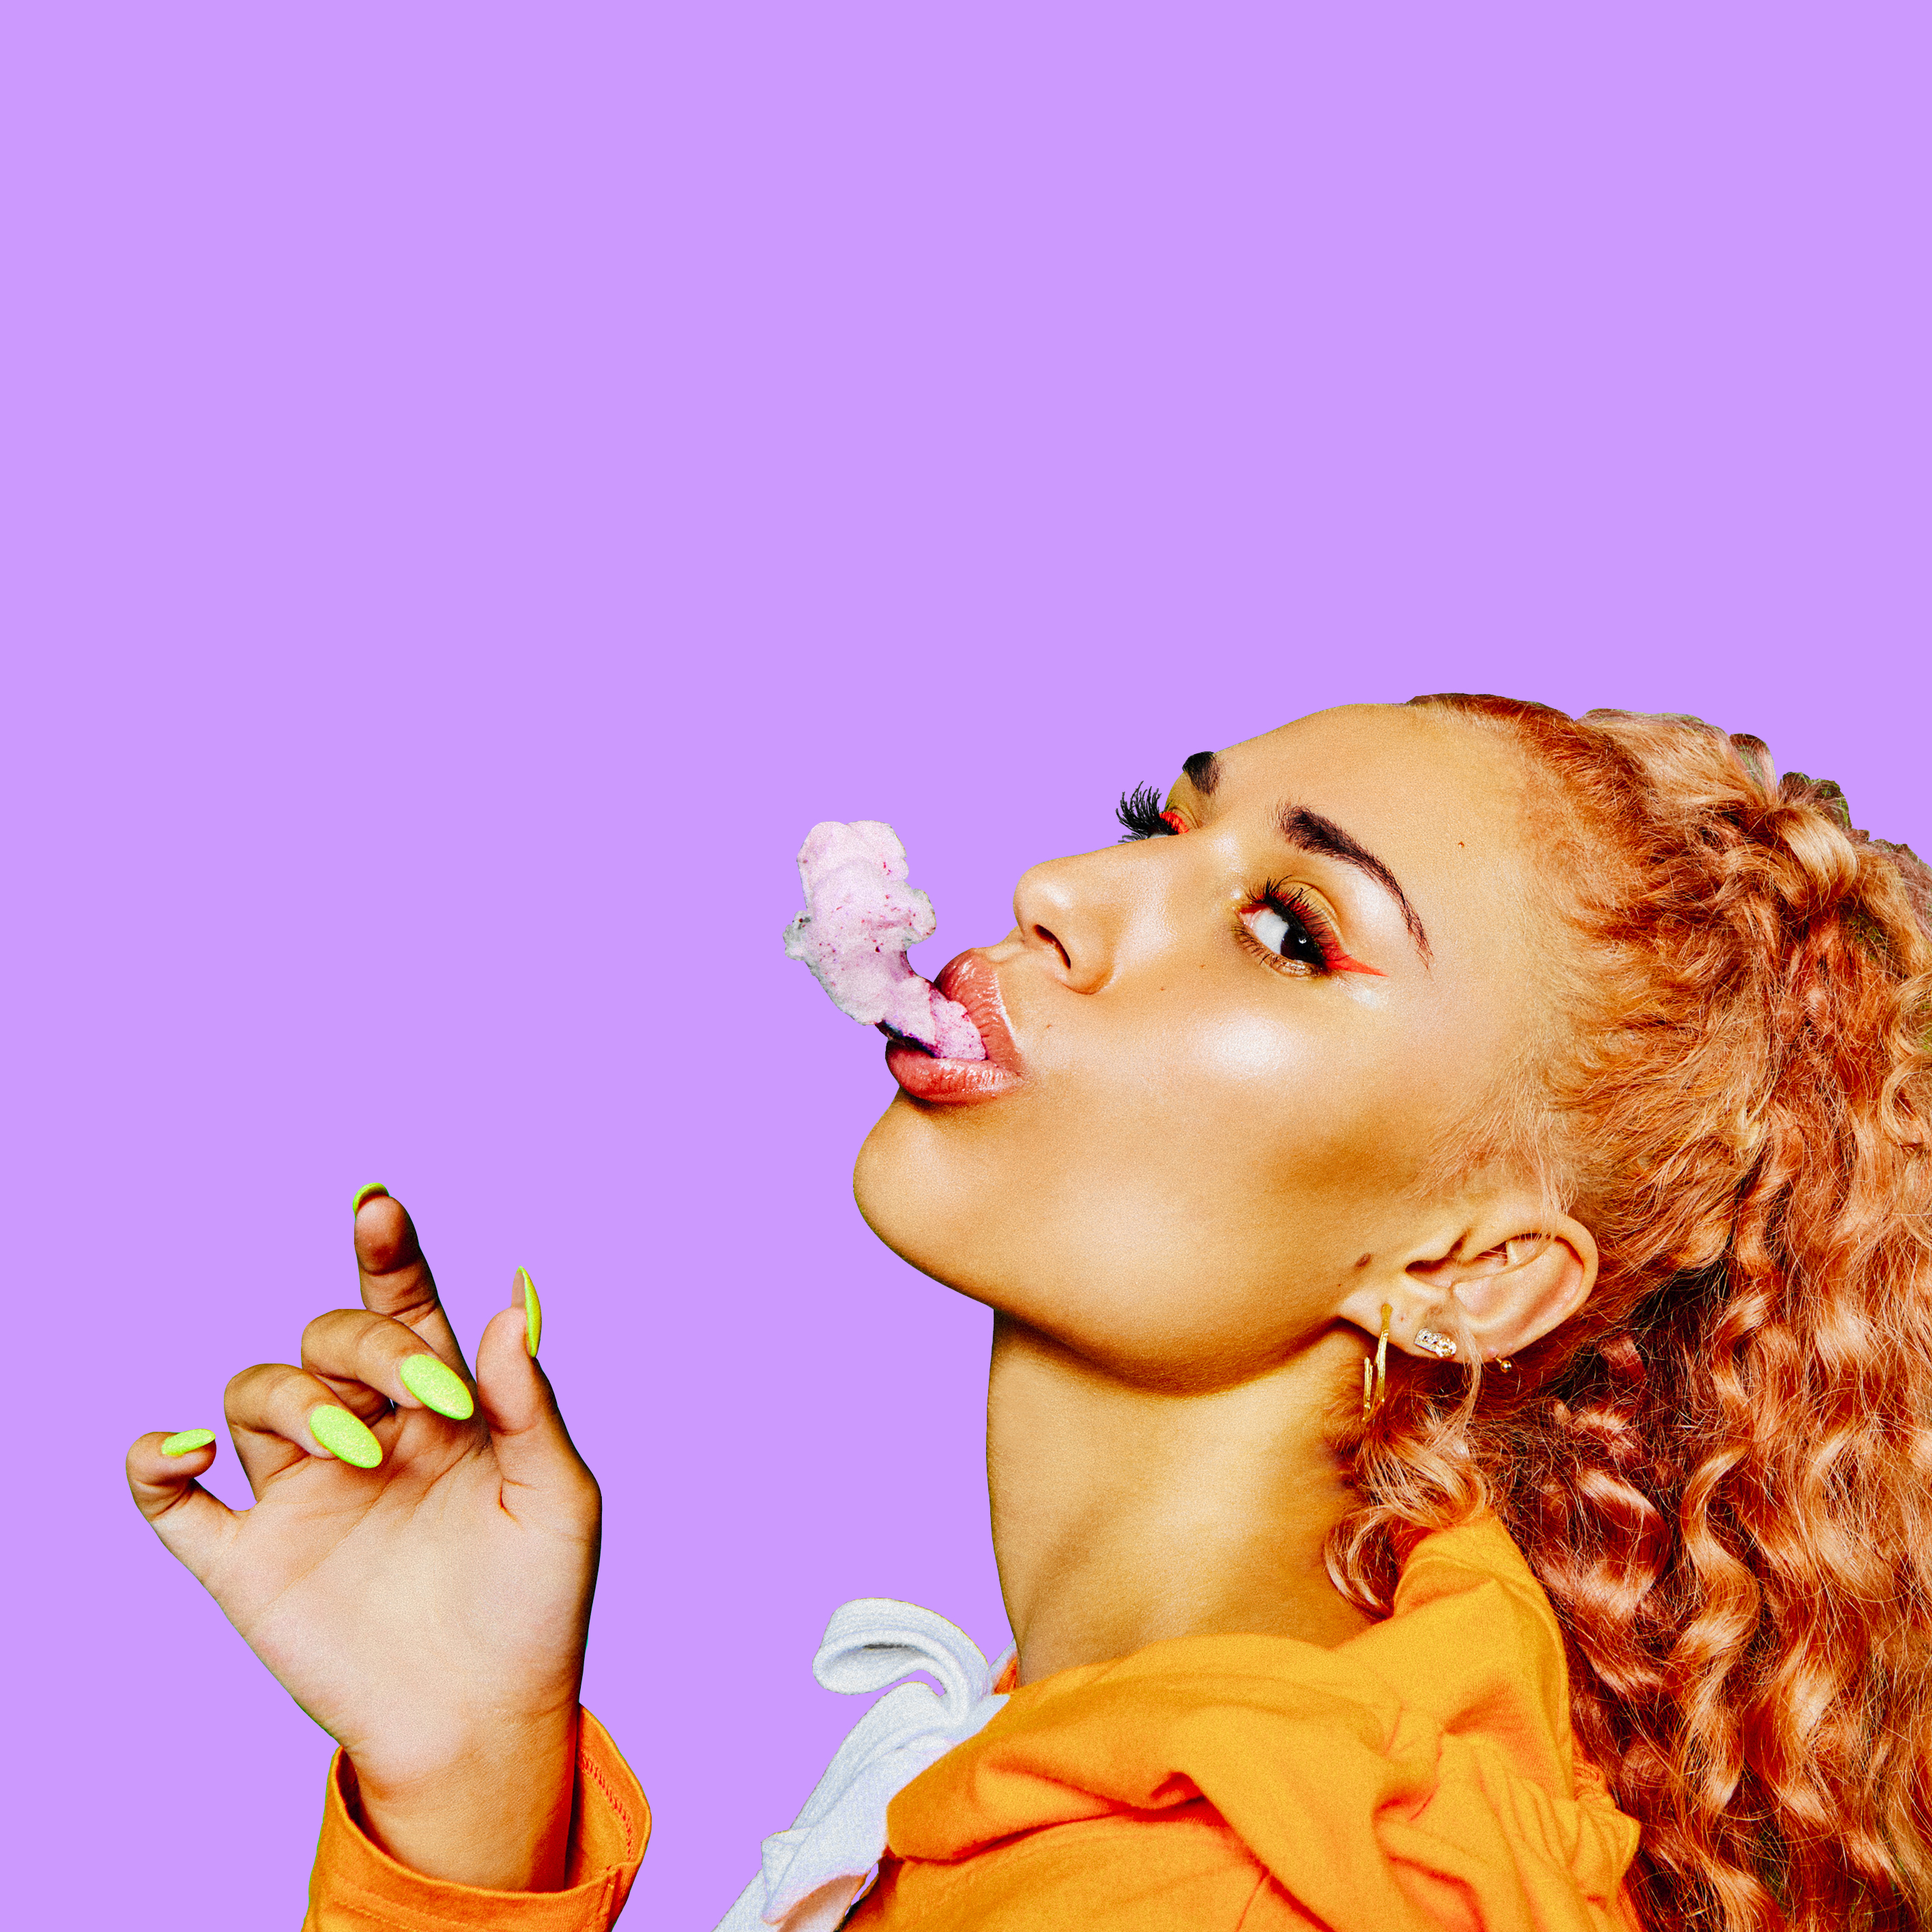 All Eyes On: Singer Raye is part of the new wave of girl power